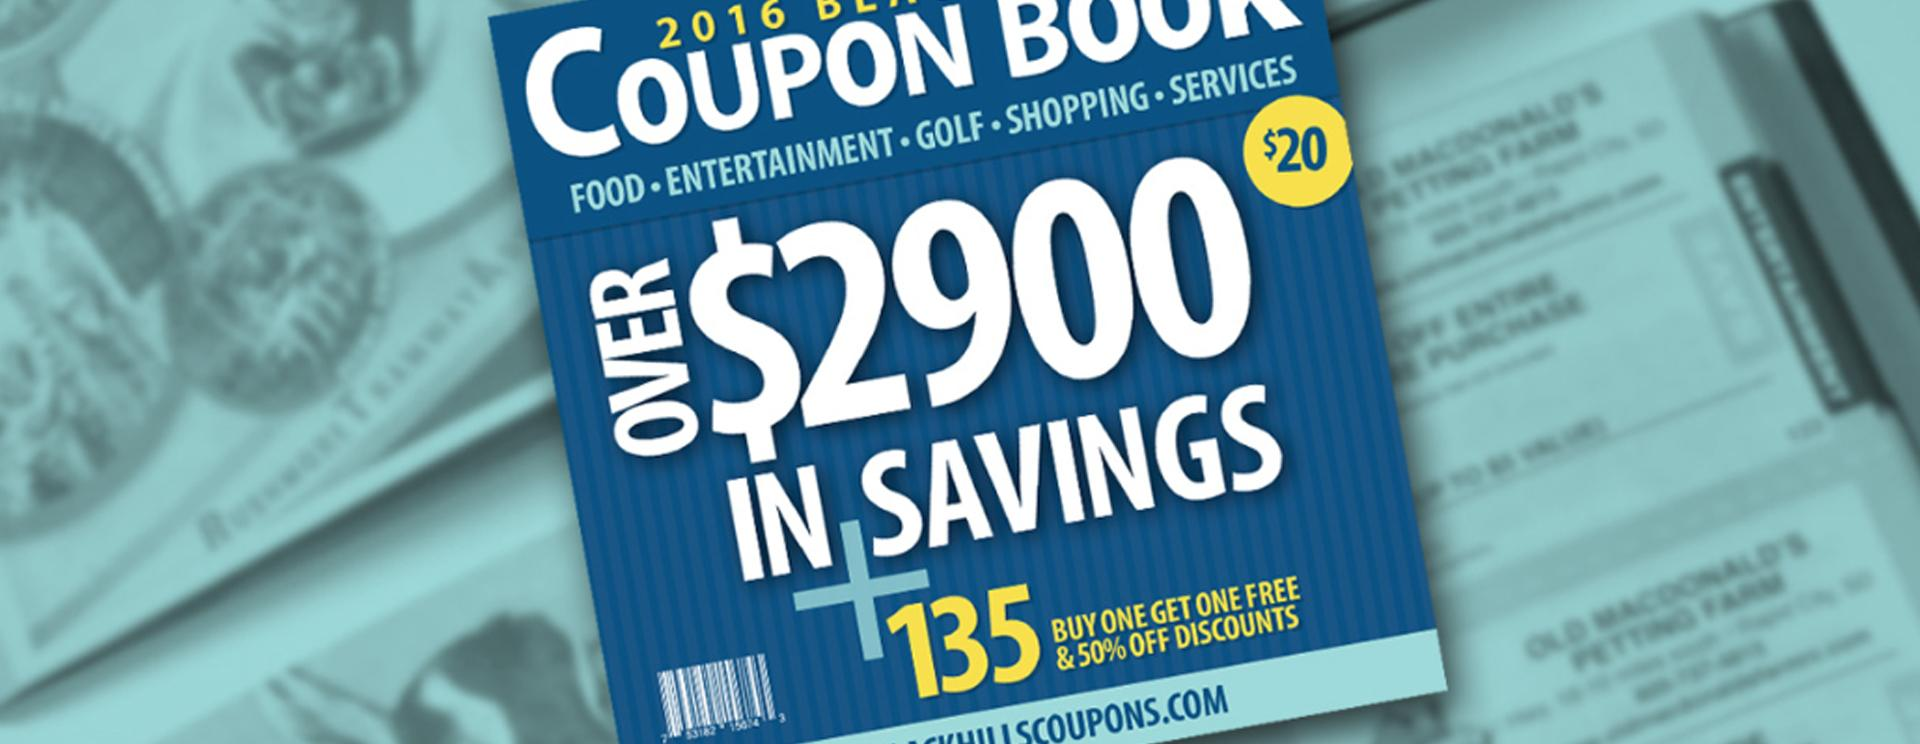 BH&B Corporate Partner: Black Hills Coupon Book